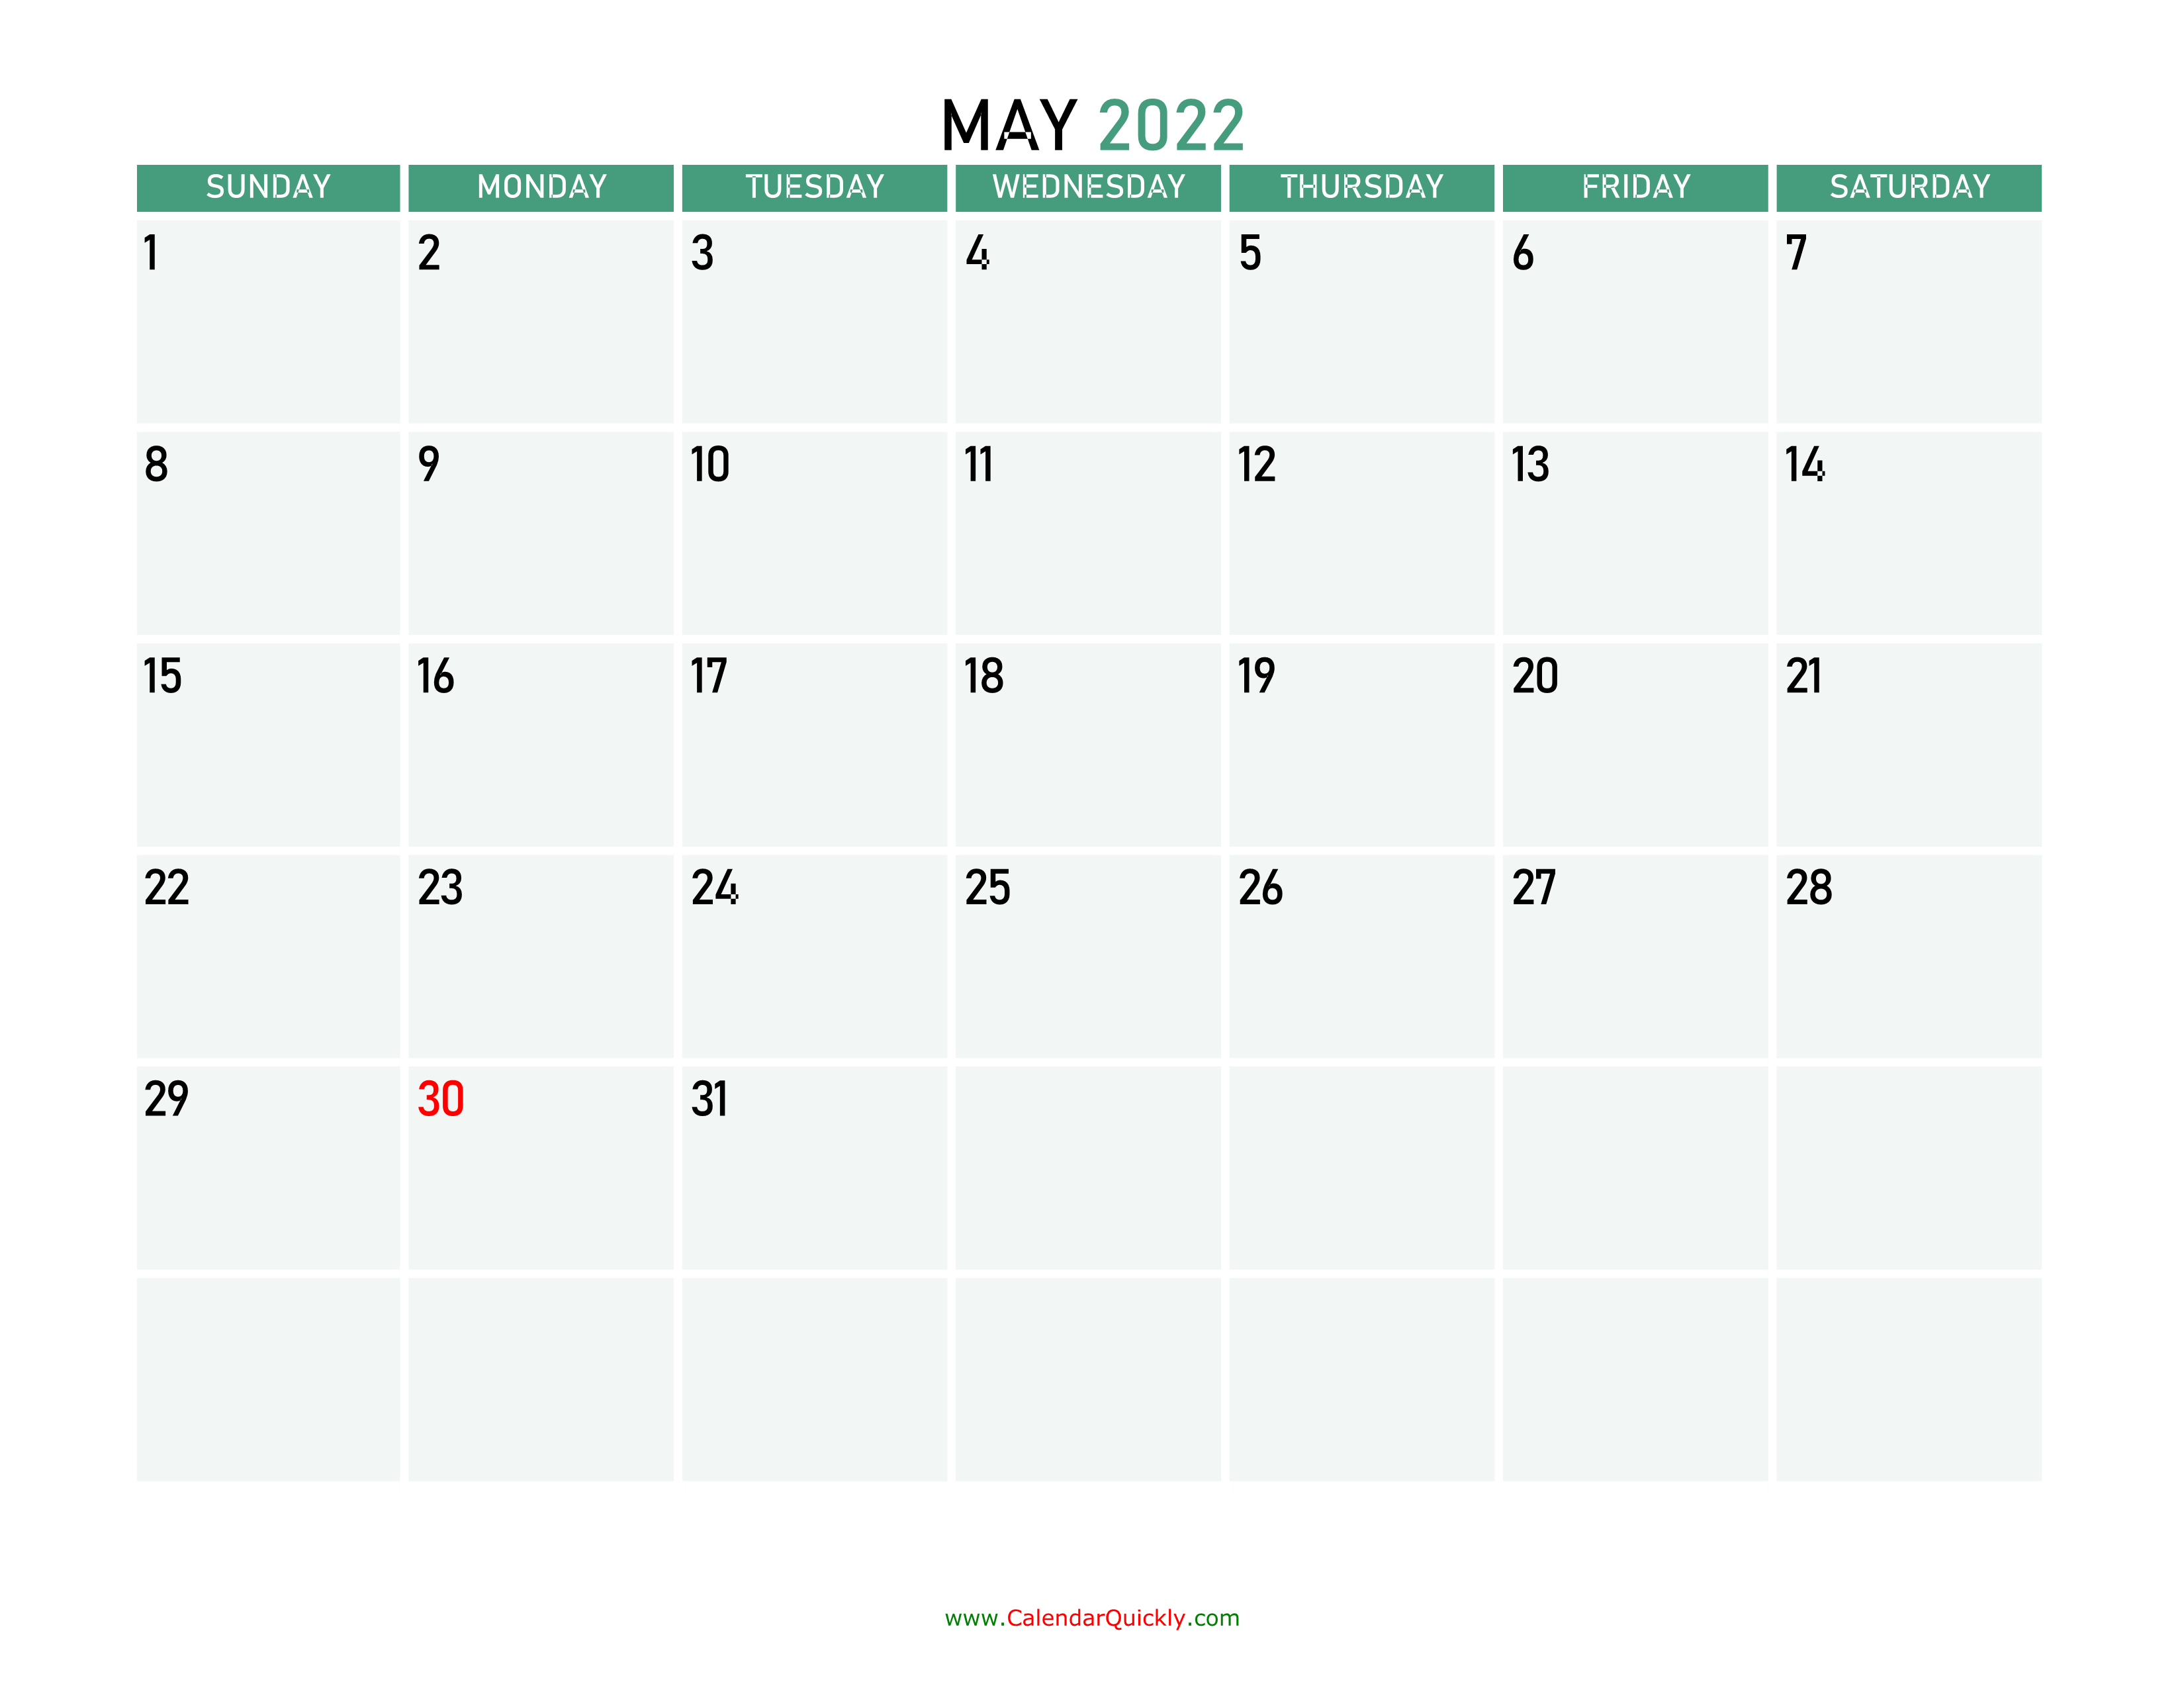 May 2022 Printable Calendar   Calendar Quickly For February March April May 2022 Calendar